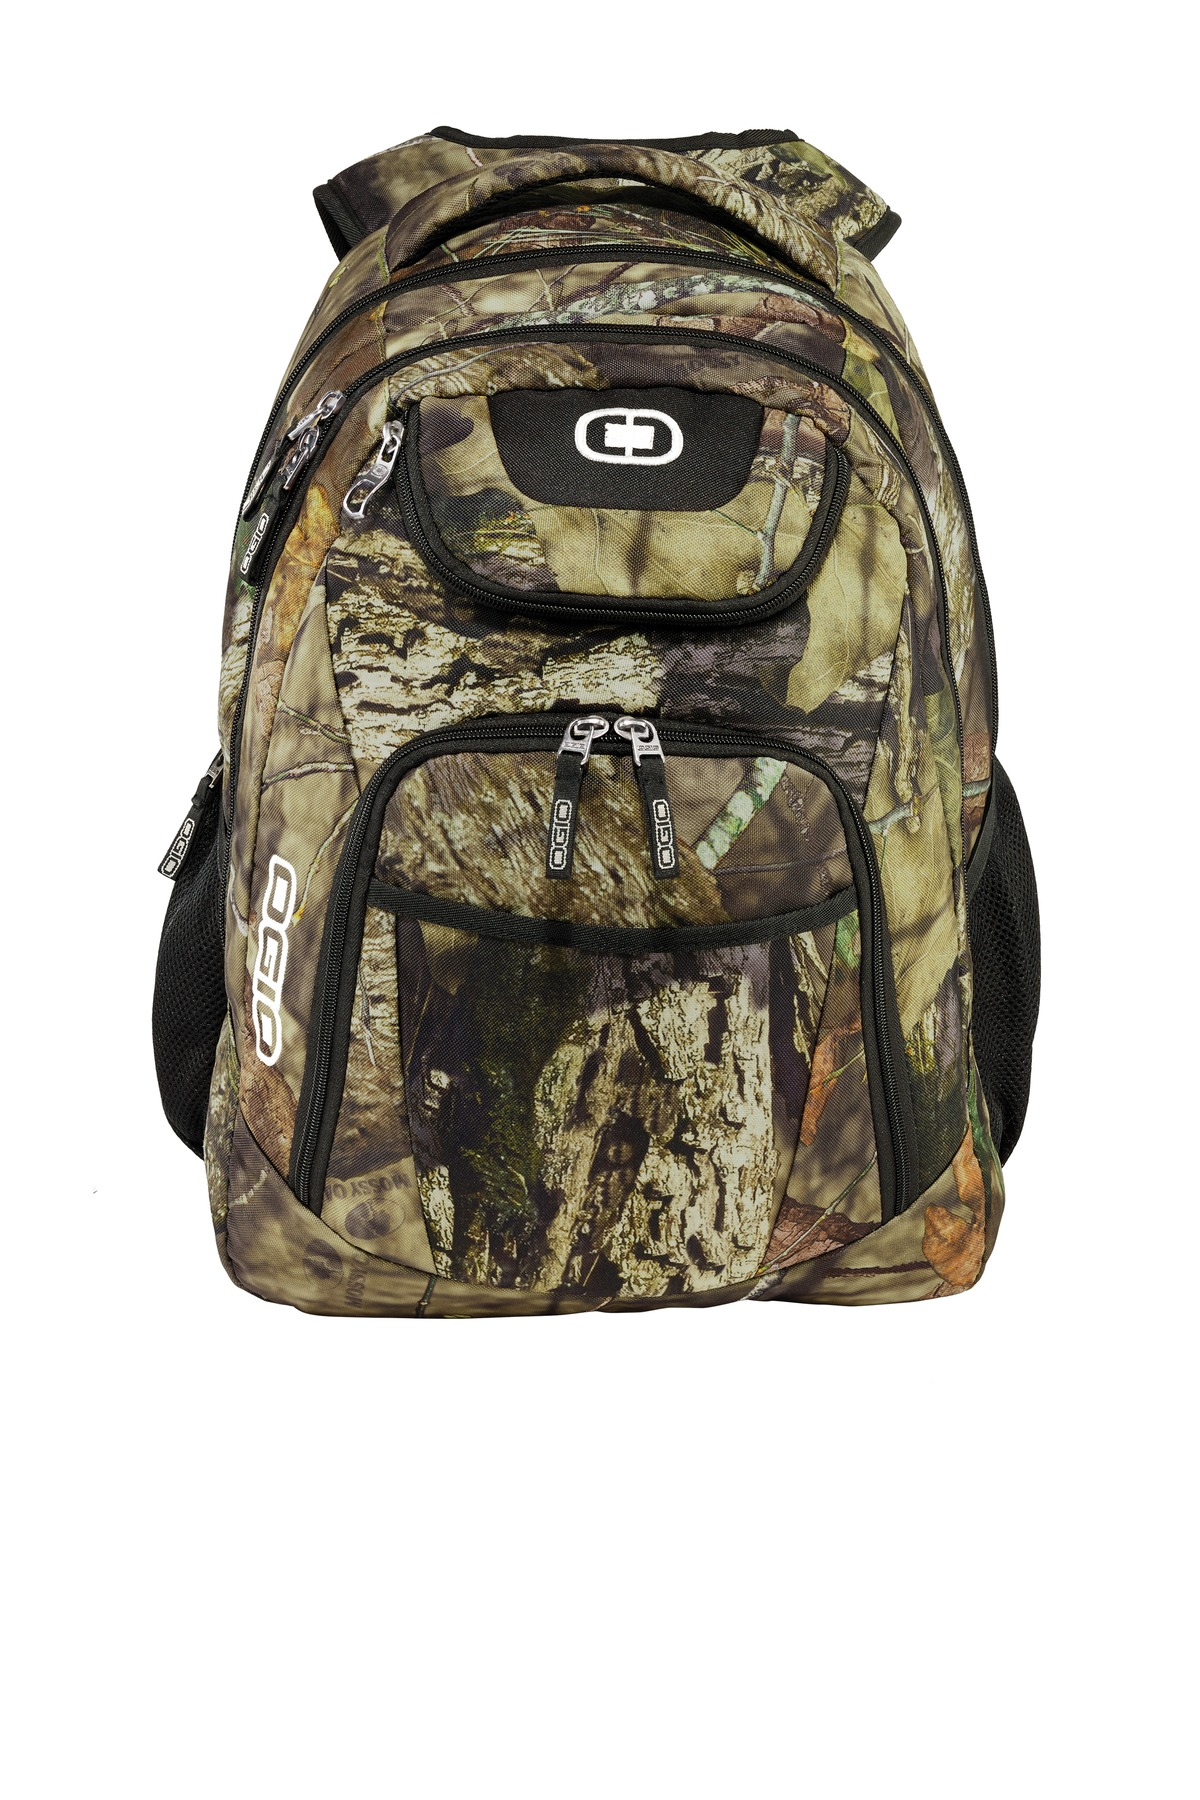 OGIO ®  Camo Excelsior Pack. 411069C - Mossy Oak Break-Up Country